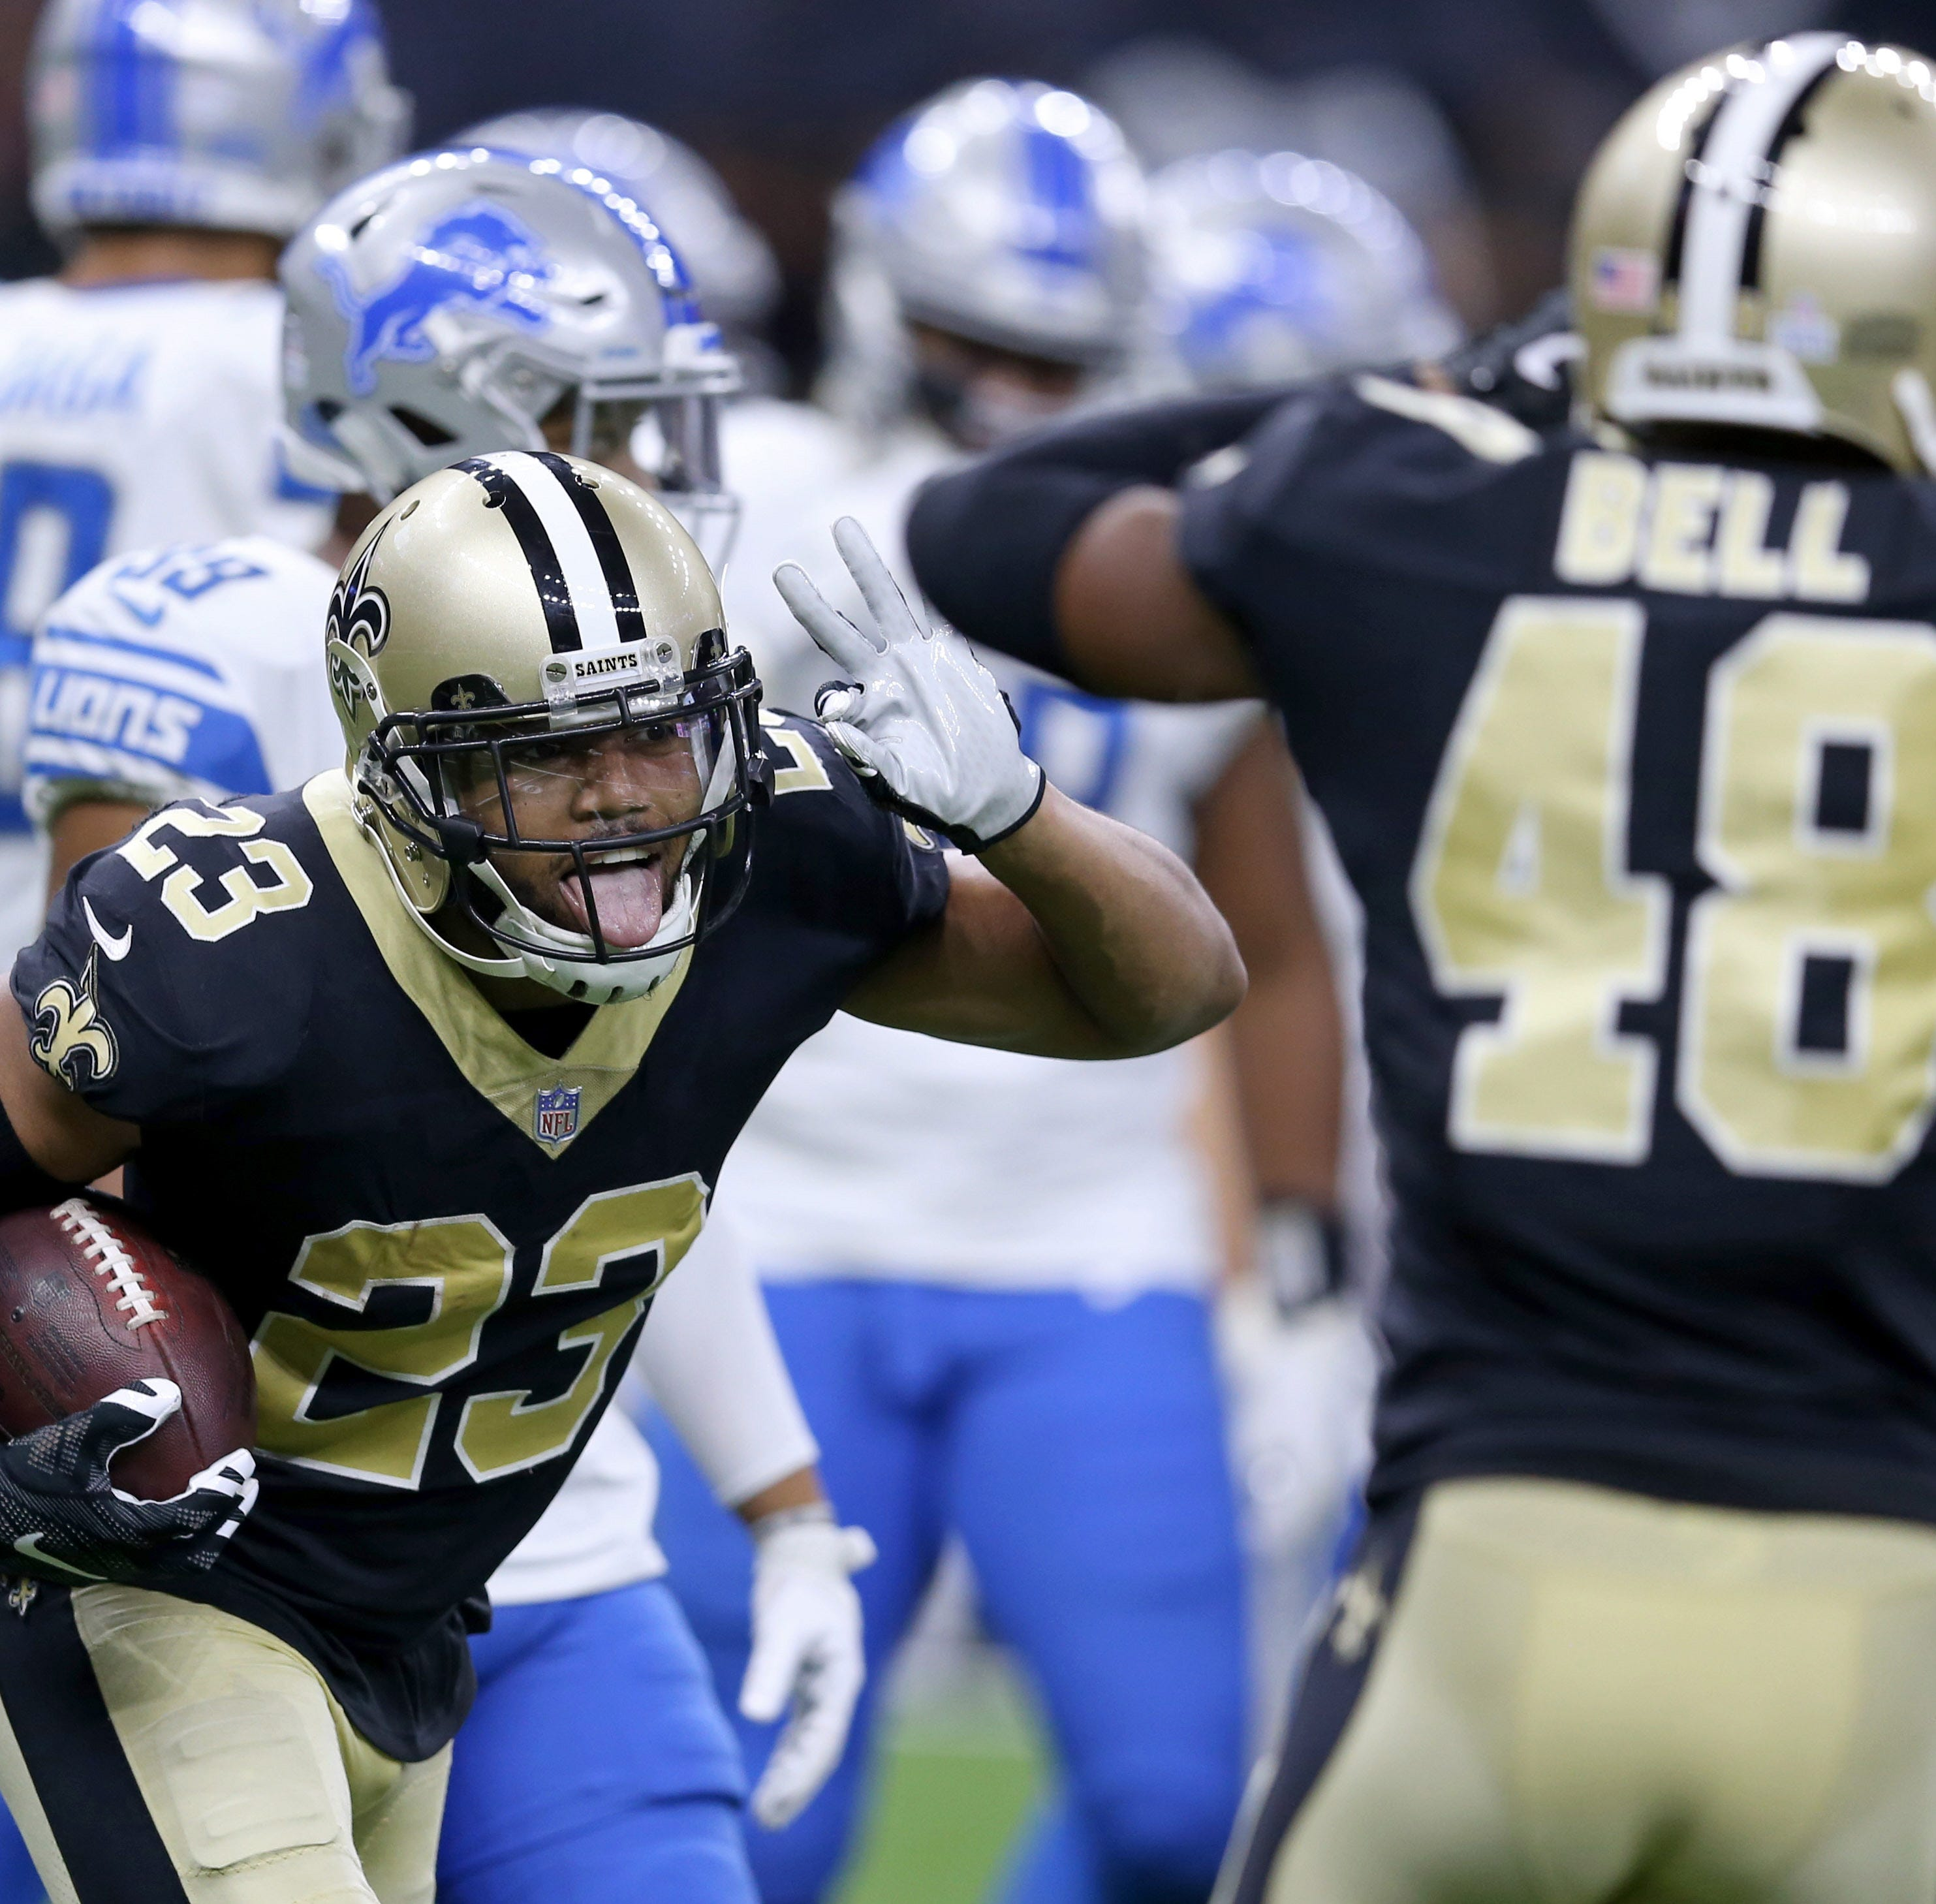 Saints defensive backs ranked among NFL's emerging stars